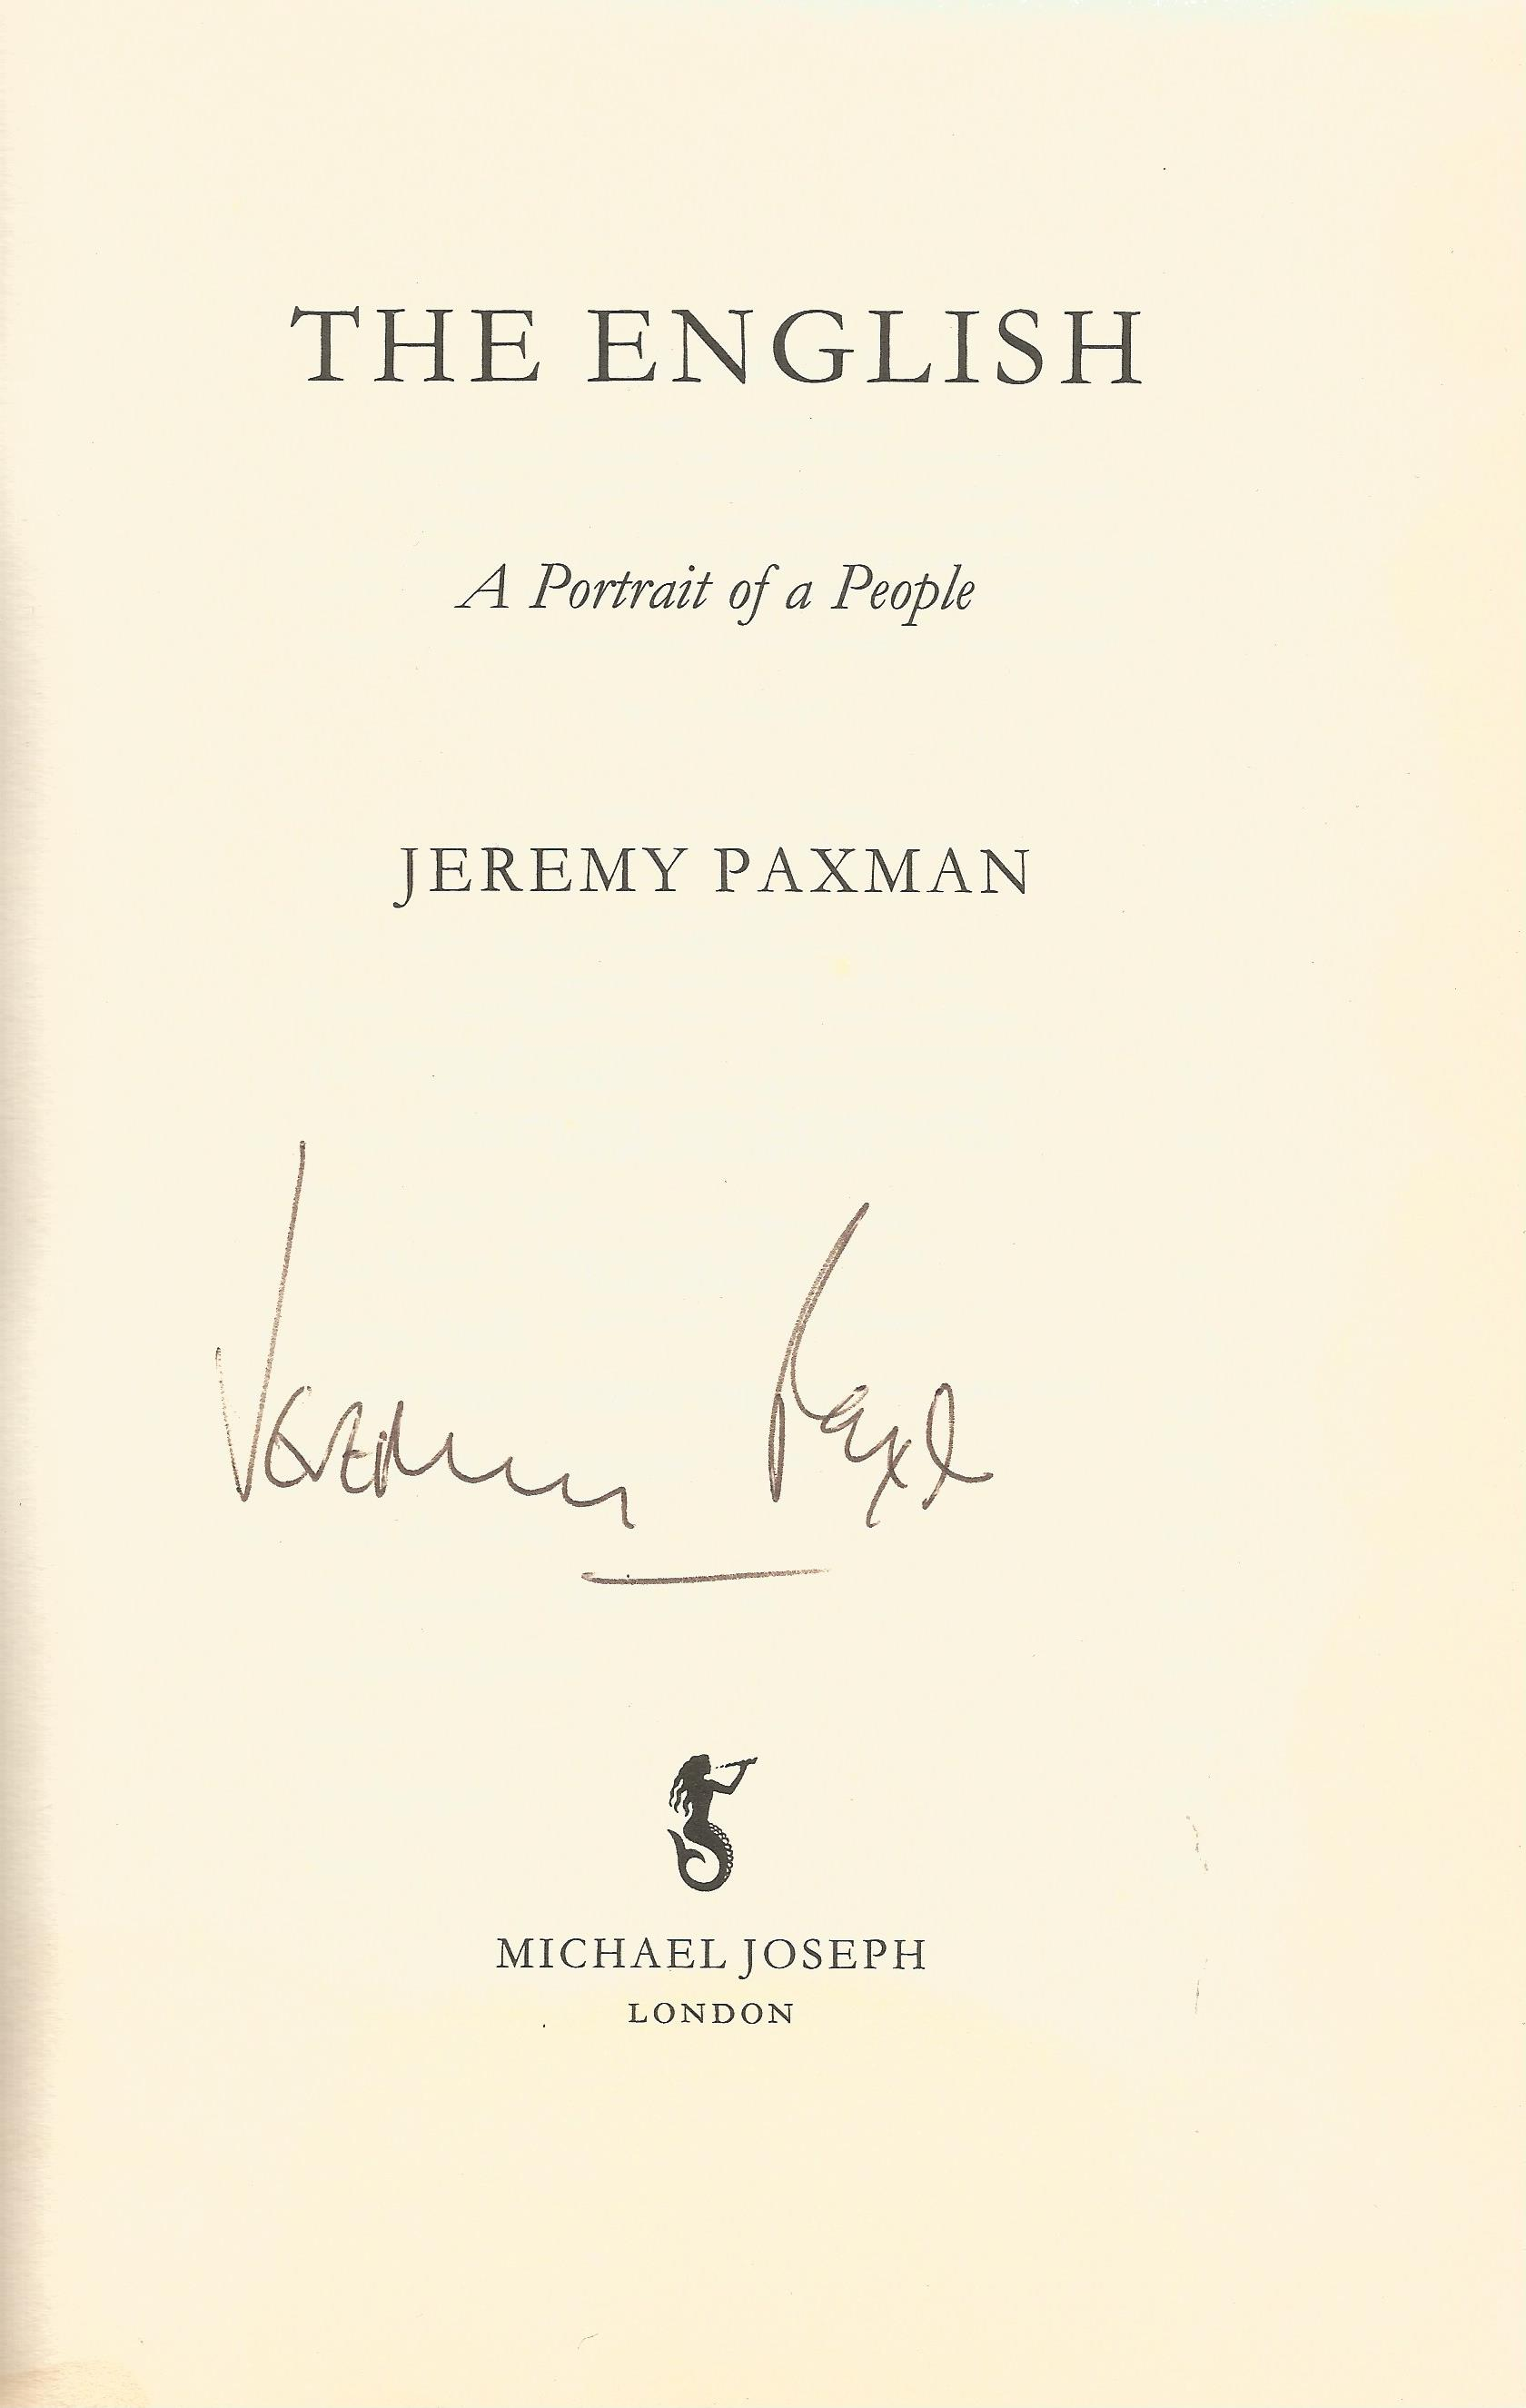 Jeremy Paxman Hardback Book The English A Portrait of People signed by the Author on the Title - Image 2 of 2